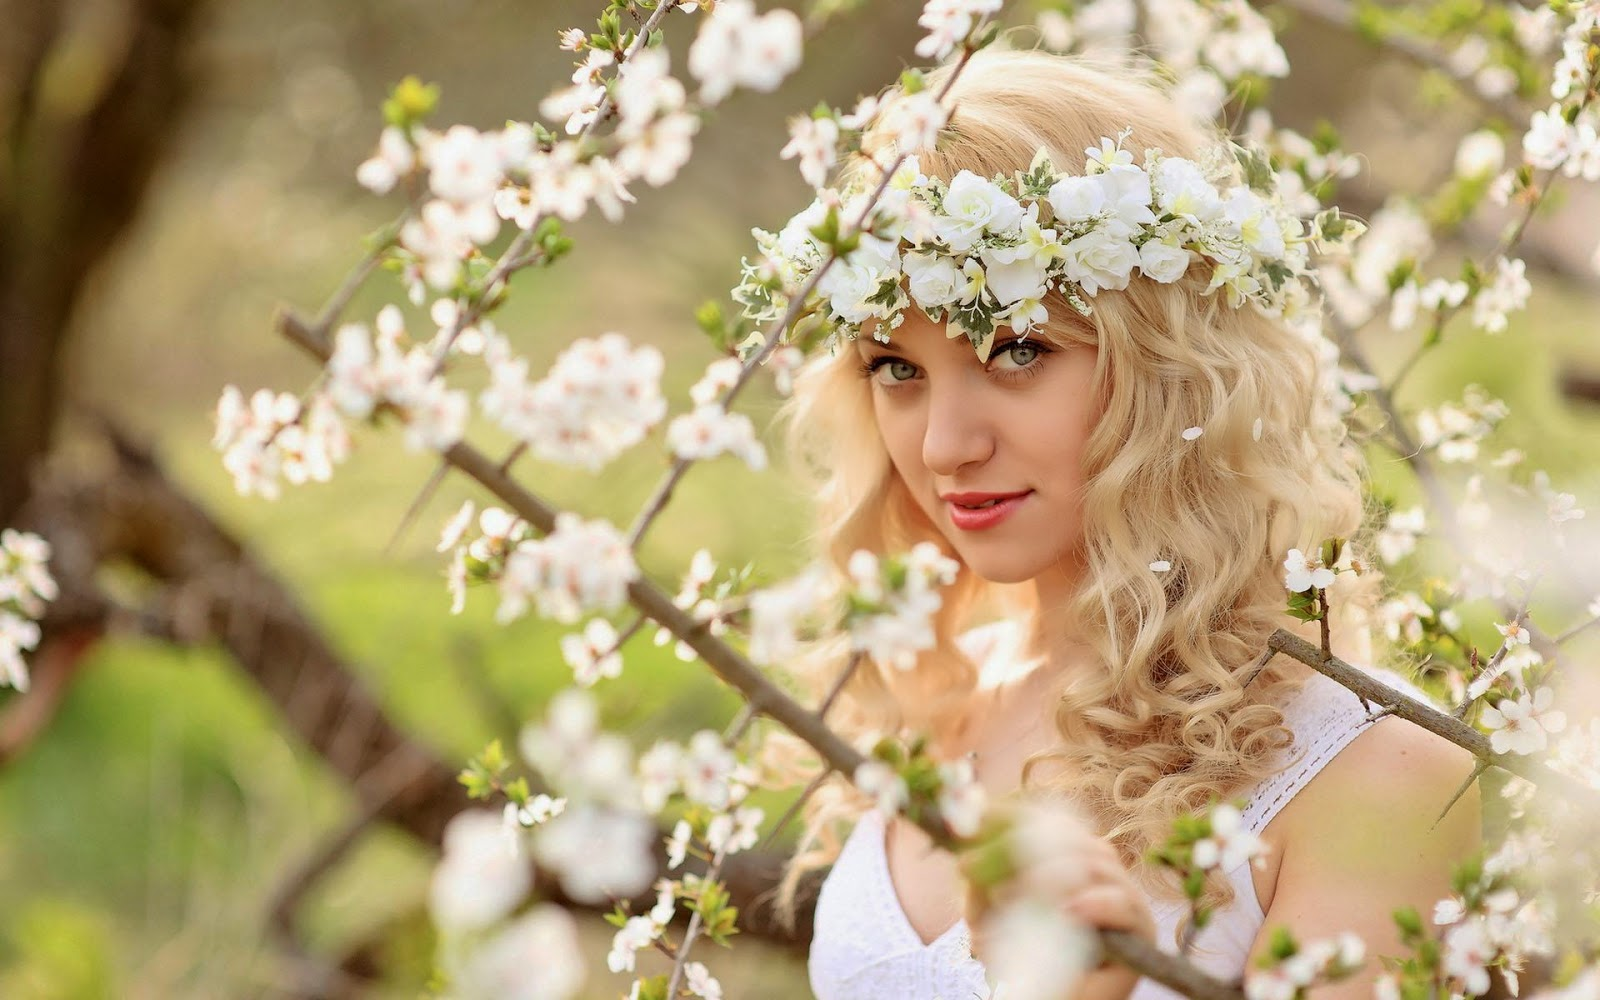 Beautiful-Girl-In-Flowers-HD-HD-Storm-Free-http-ift-tt-hYjgP-wallpaper-wp4404954